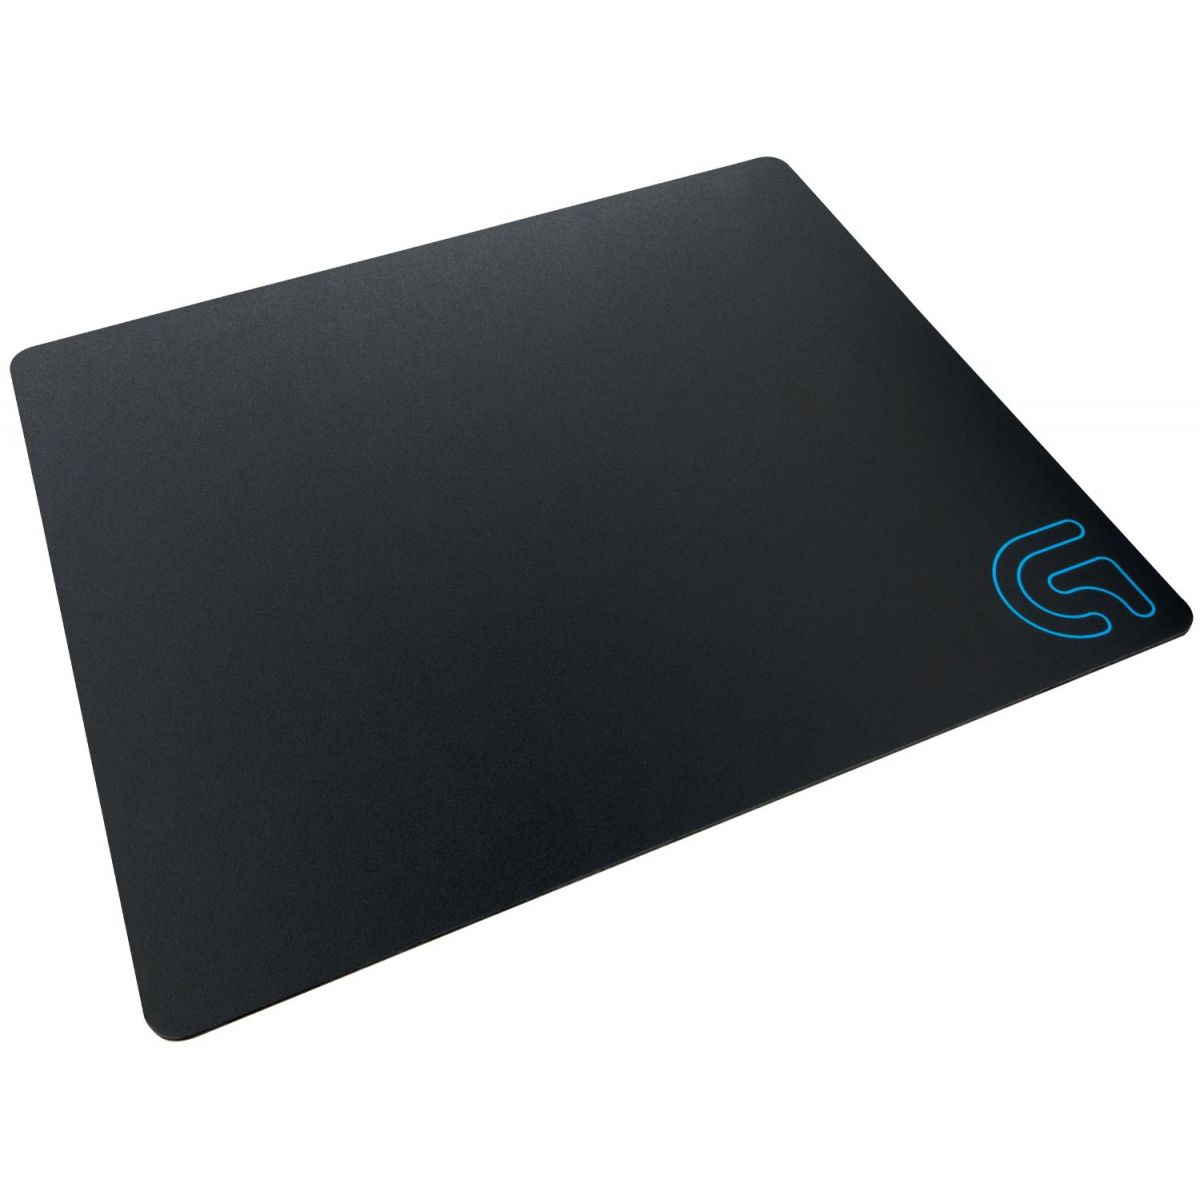 Mouse Pad Hard Gaming G440 943-000049 - Logitech